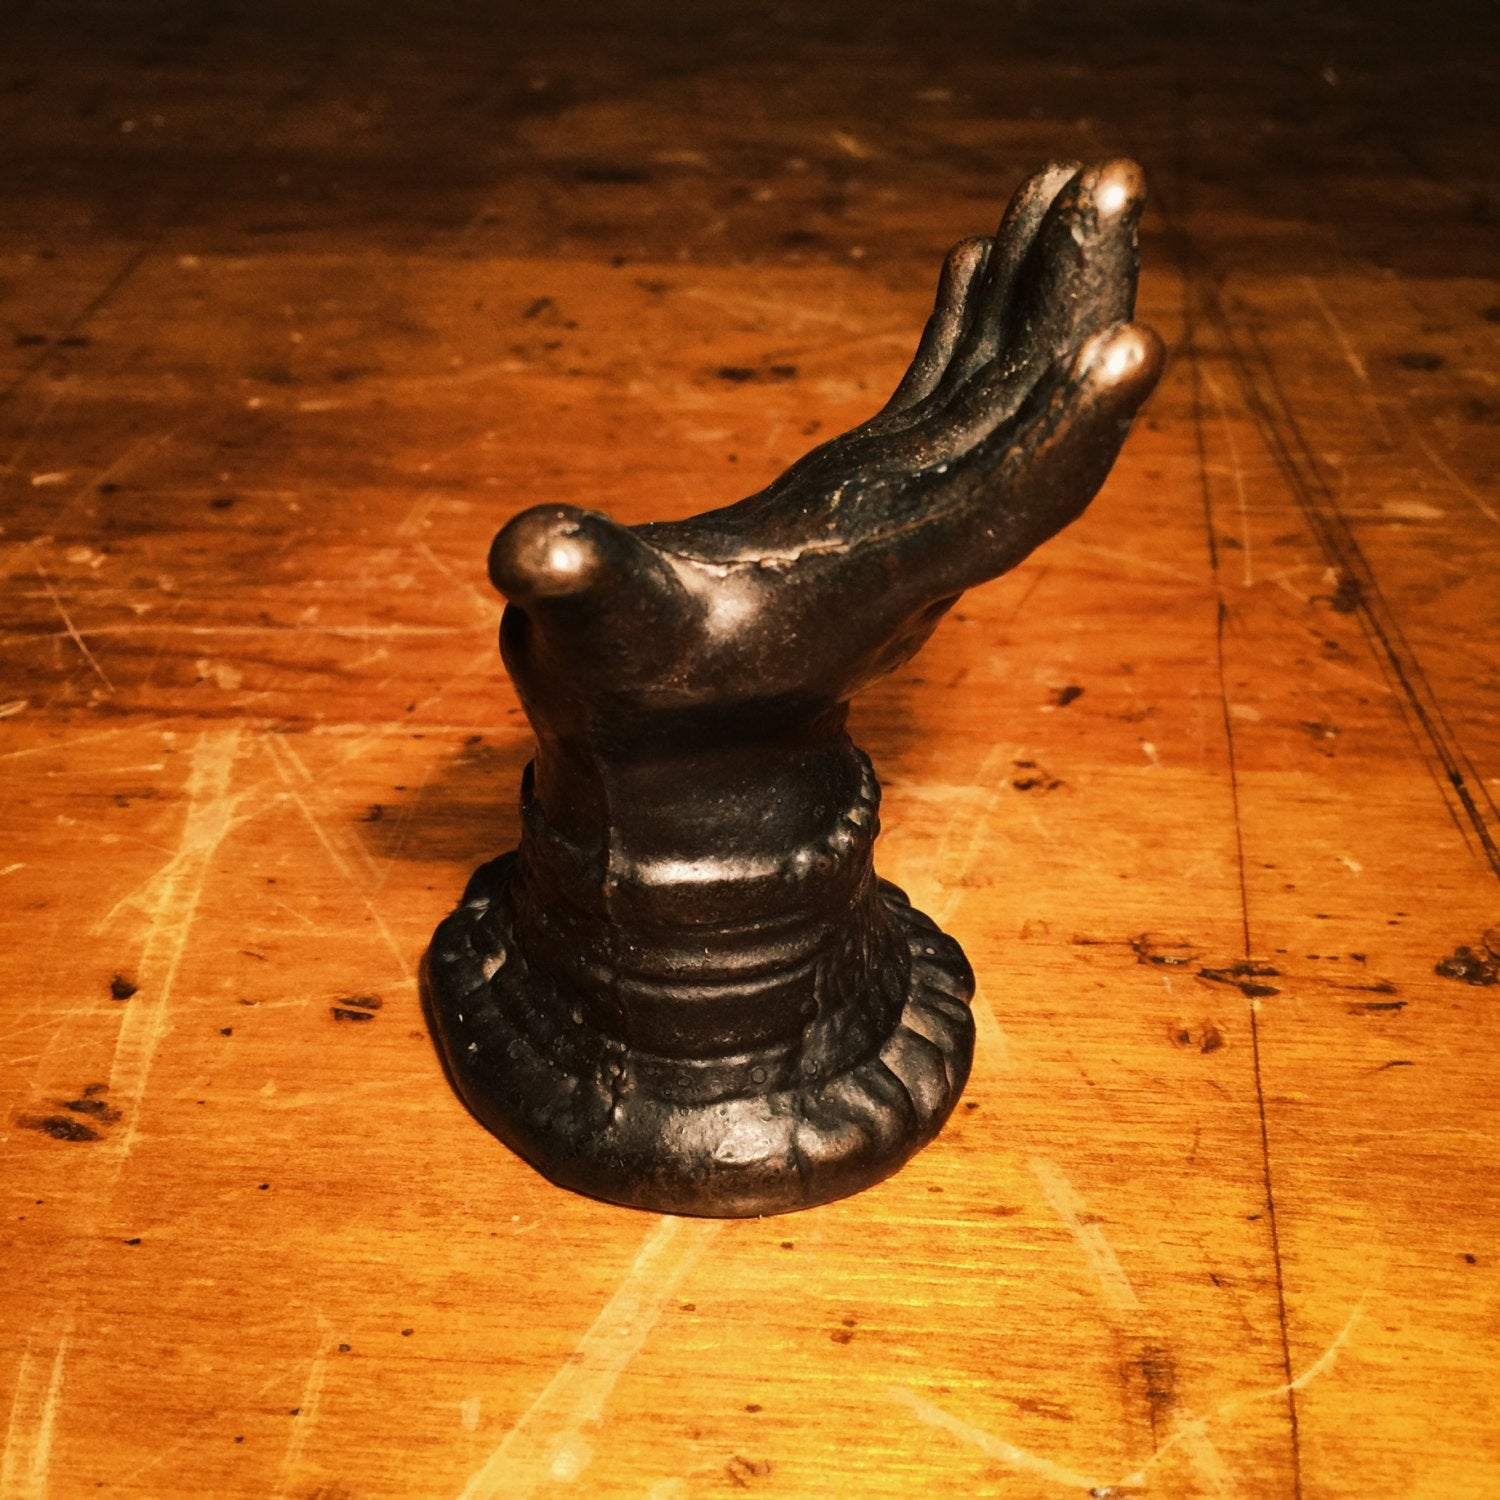 Rare Victorian Paperweight of a Creepy Hand - Cast Iron - Turn of the Century - Ornate Base - Antique - Unusual - Bizarre - Figural